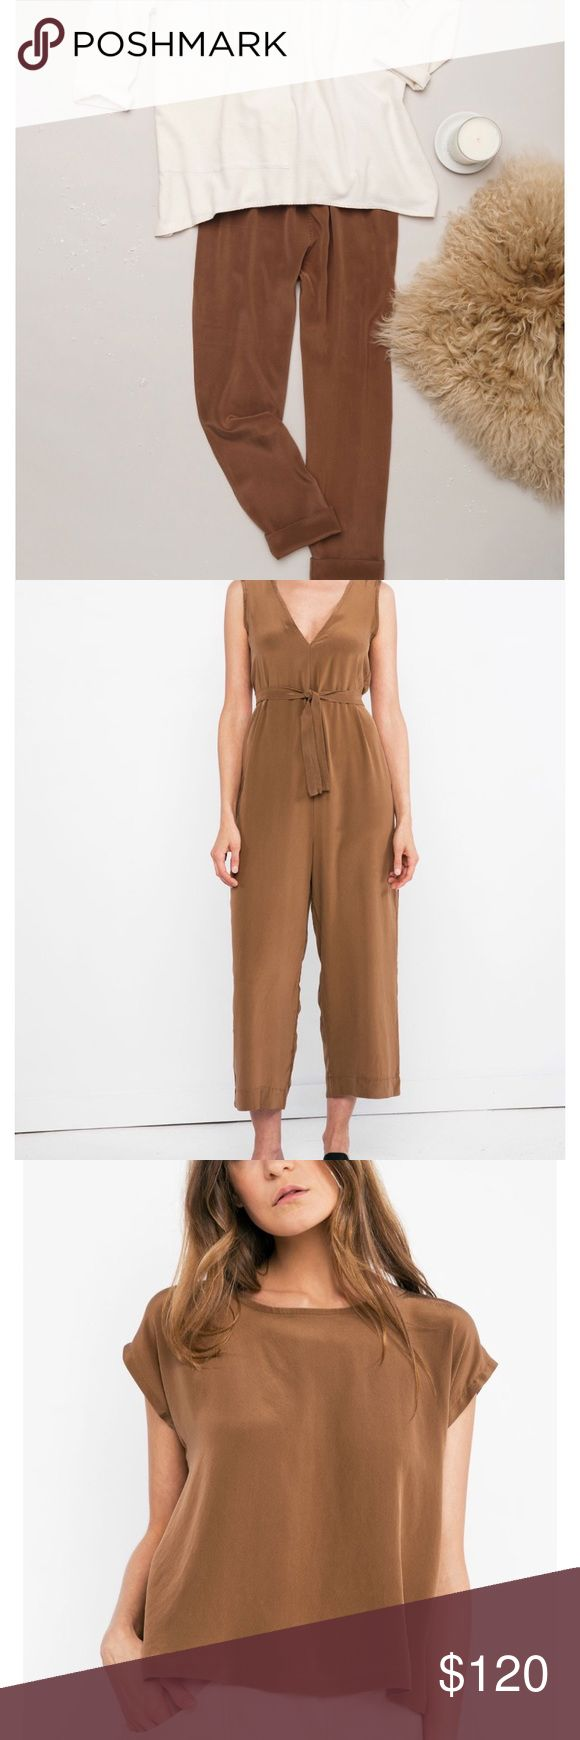 ISO Elizabeth Suzann Mara Jumpsuit ISO Elizabeth Suzann Tilda Pant in Xs short in silk or linen. Black or Moss. Also looking for Florence Pant in silk rust xs short or xxs short. Would also be interested in bell skirt, Mara jumpsuit, Josephine vented shell, Georgia dress and Georgia tee in similar sizes. Basically I love all of ES clothes! : ) elizabeth suzann Pants